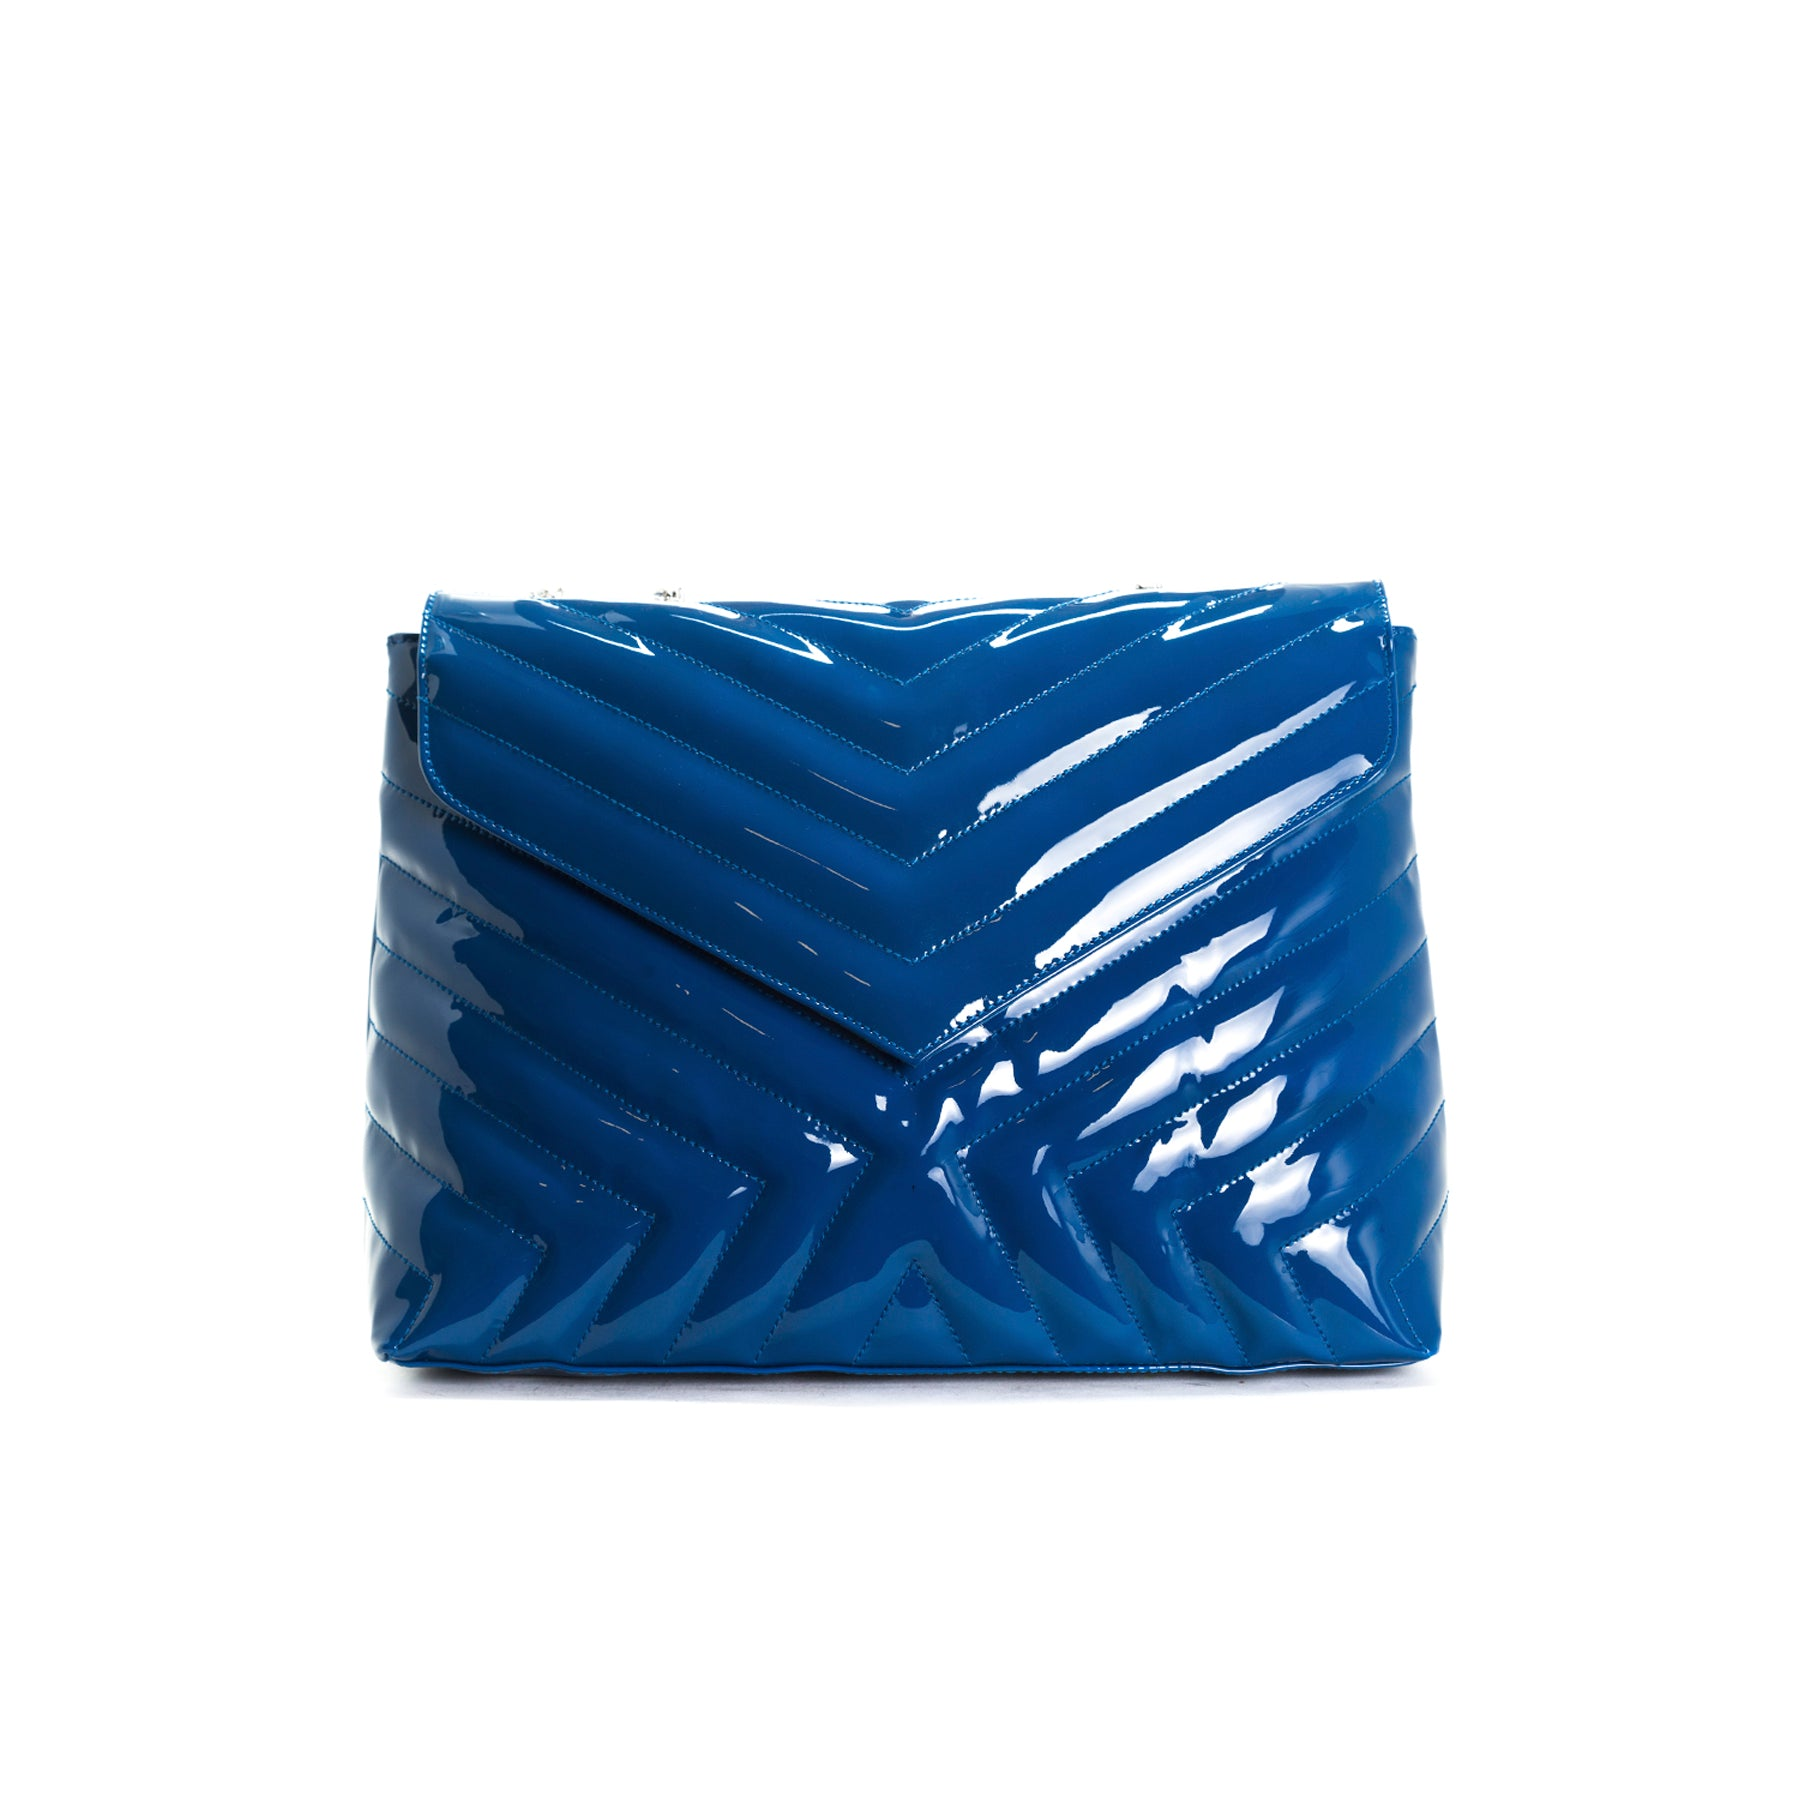 Melpo Blue Patent Bag